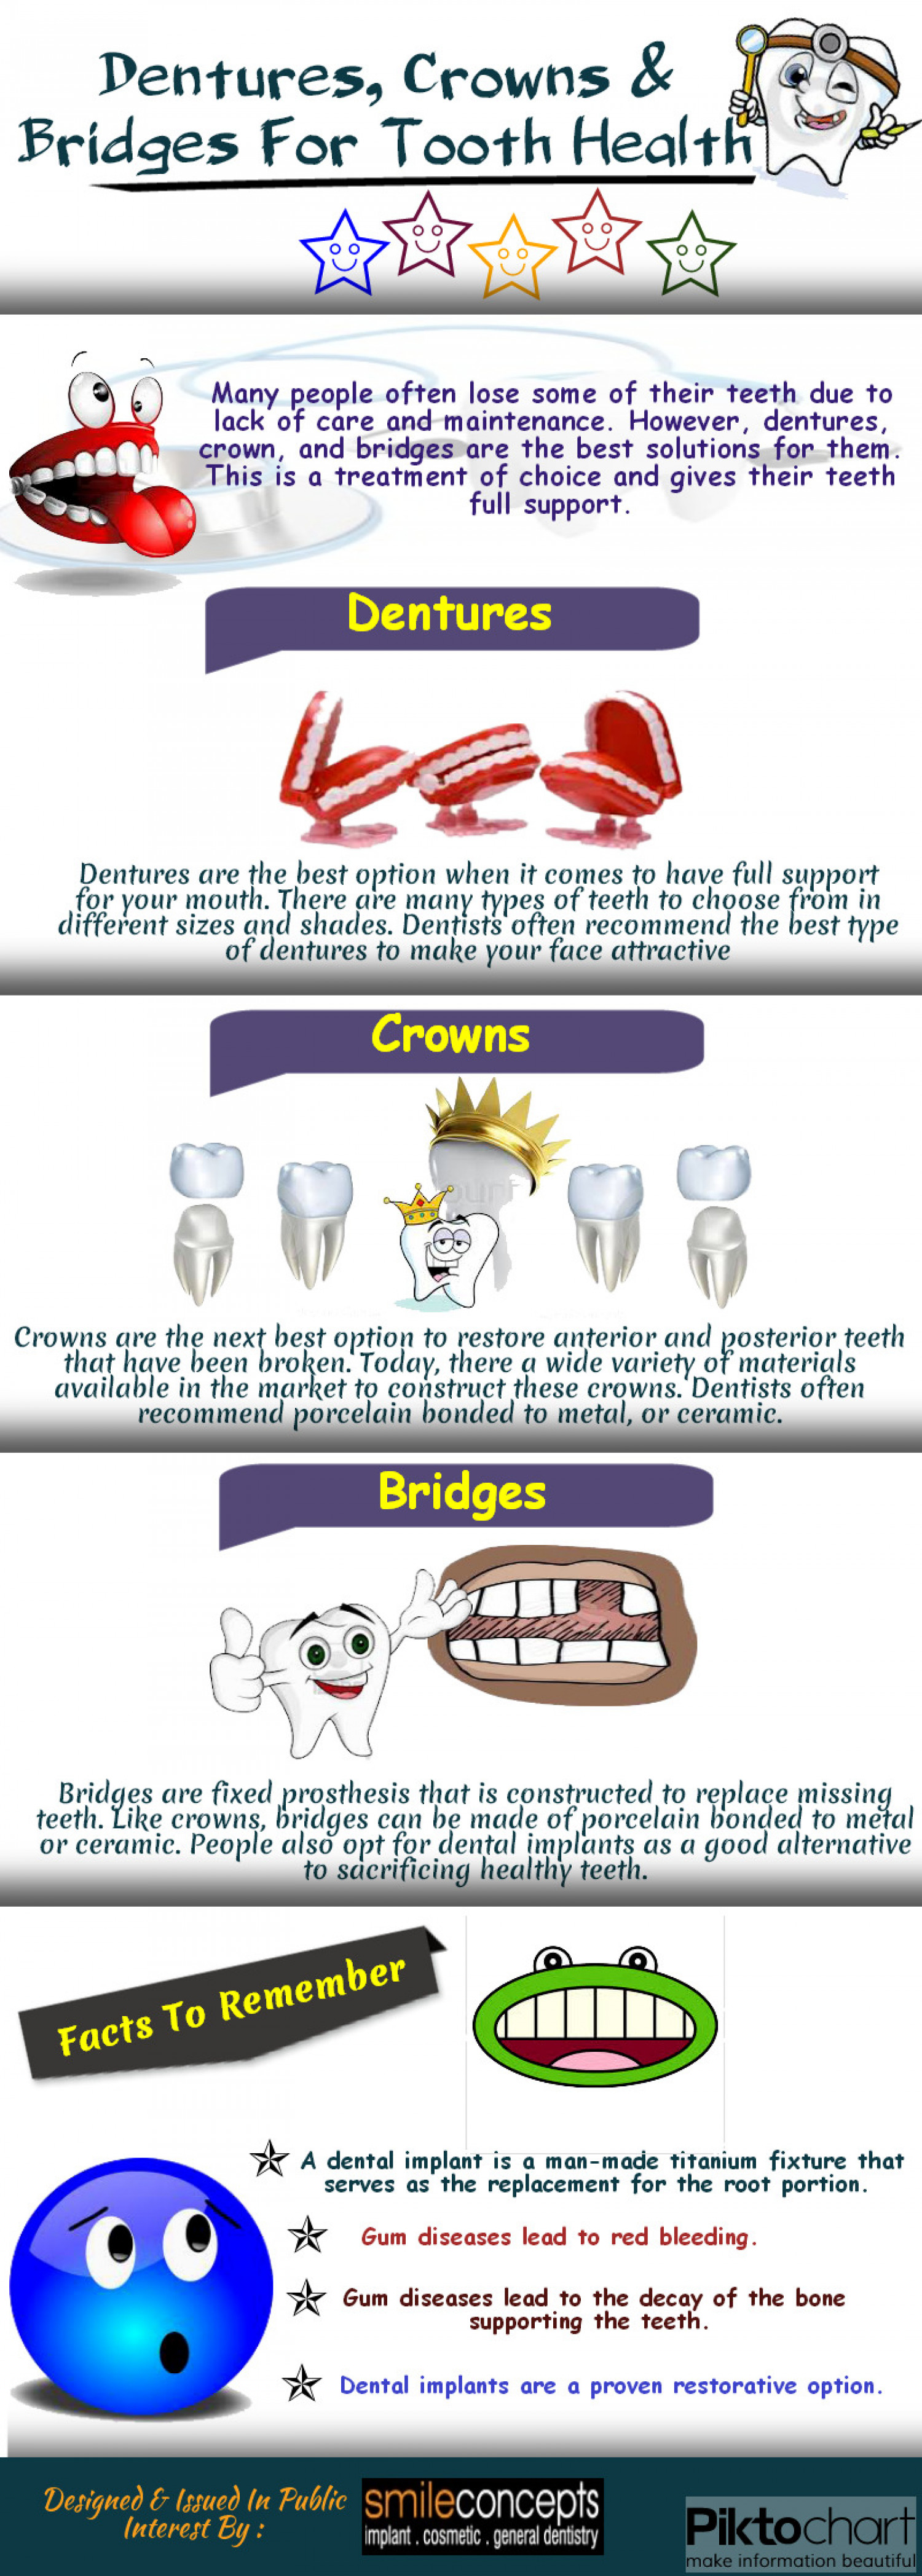 Dentures, Crowns & Bridges for Tooth Health Infographic